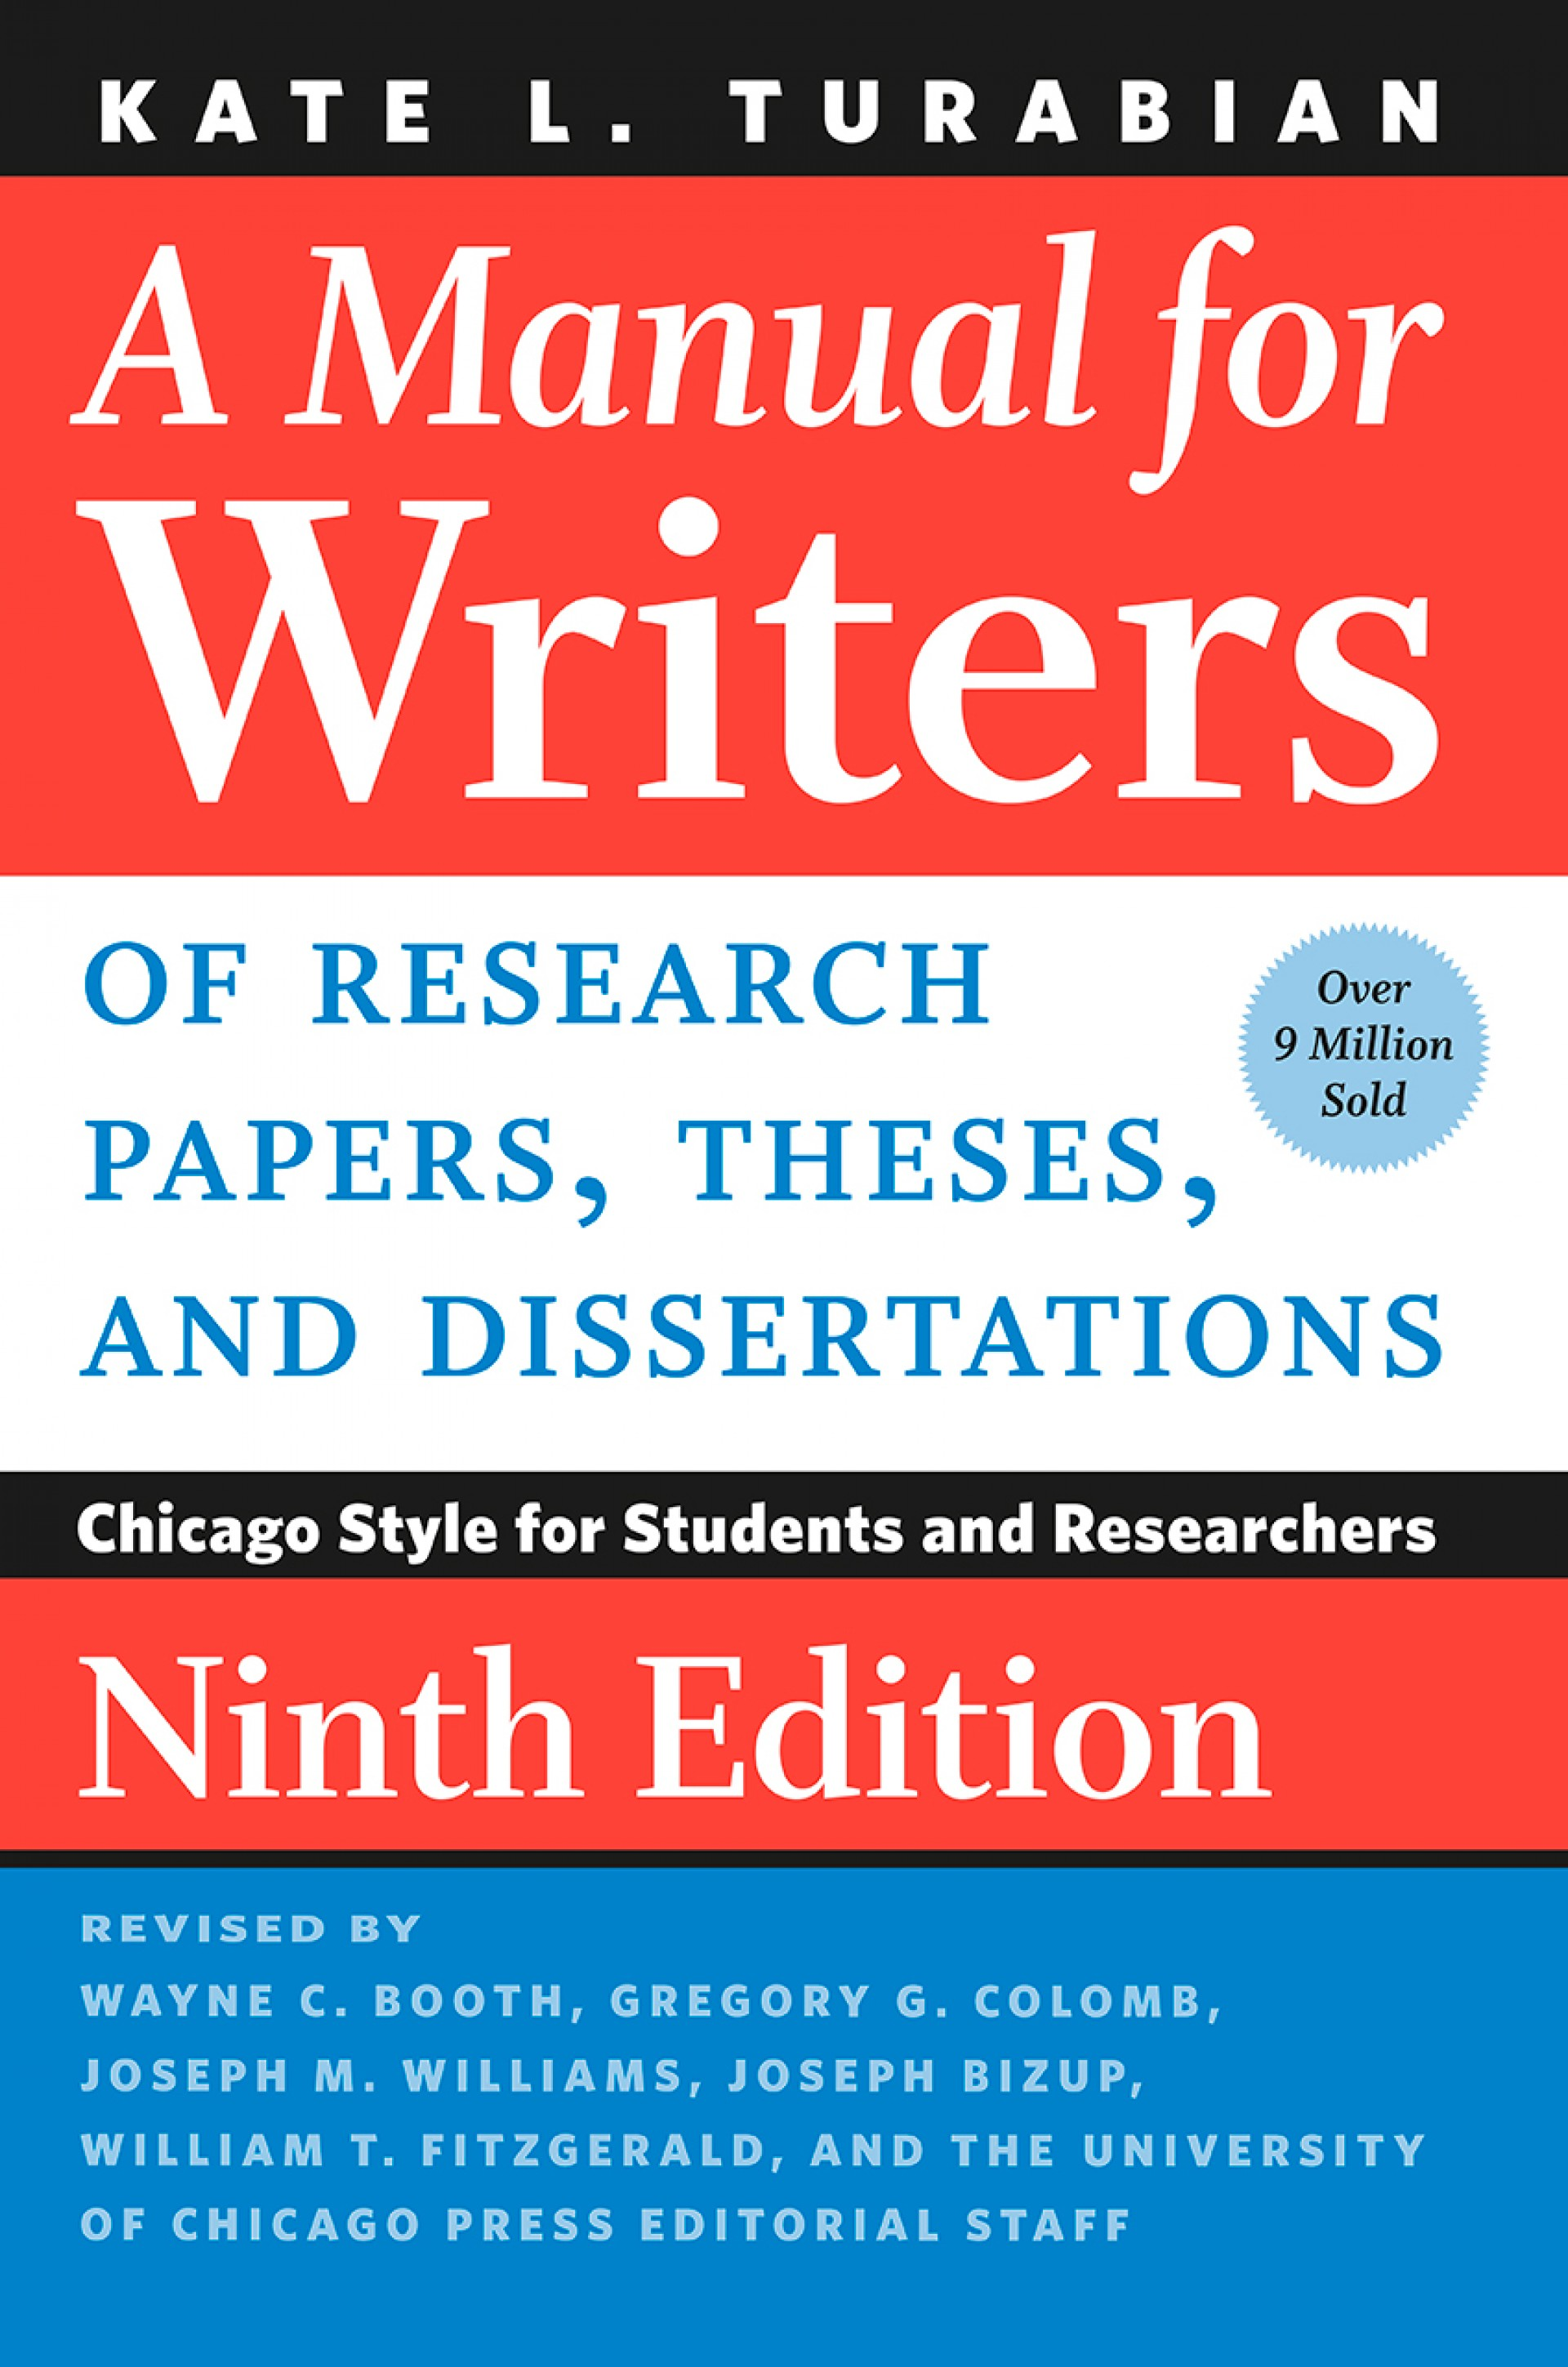 001 Manual For Writers Of Research Papers Theses And Dissertations Paper Magnificent A Amazon 9th Edition Pdf 8th 13 1920